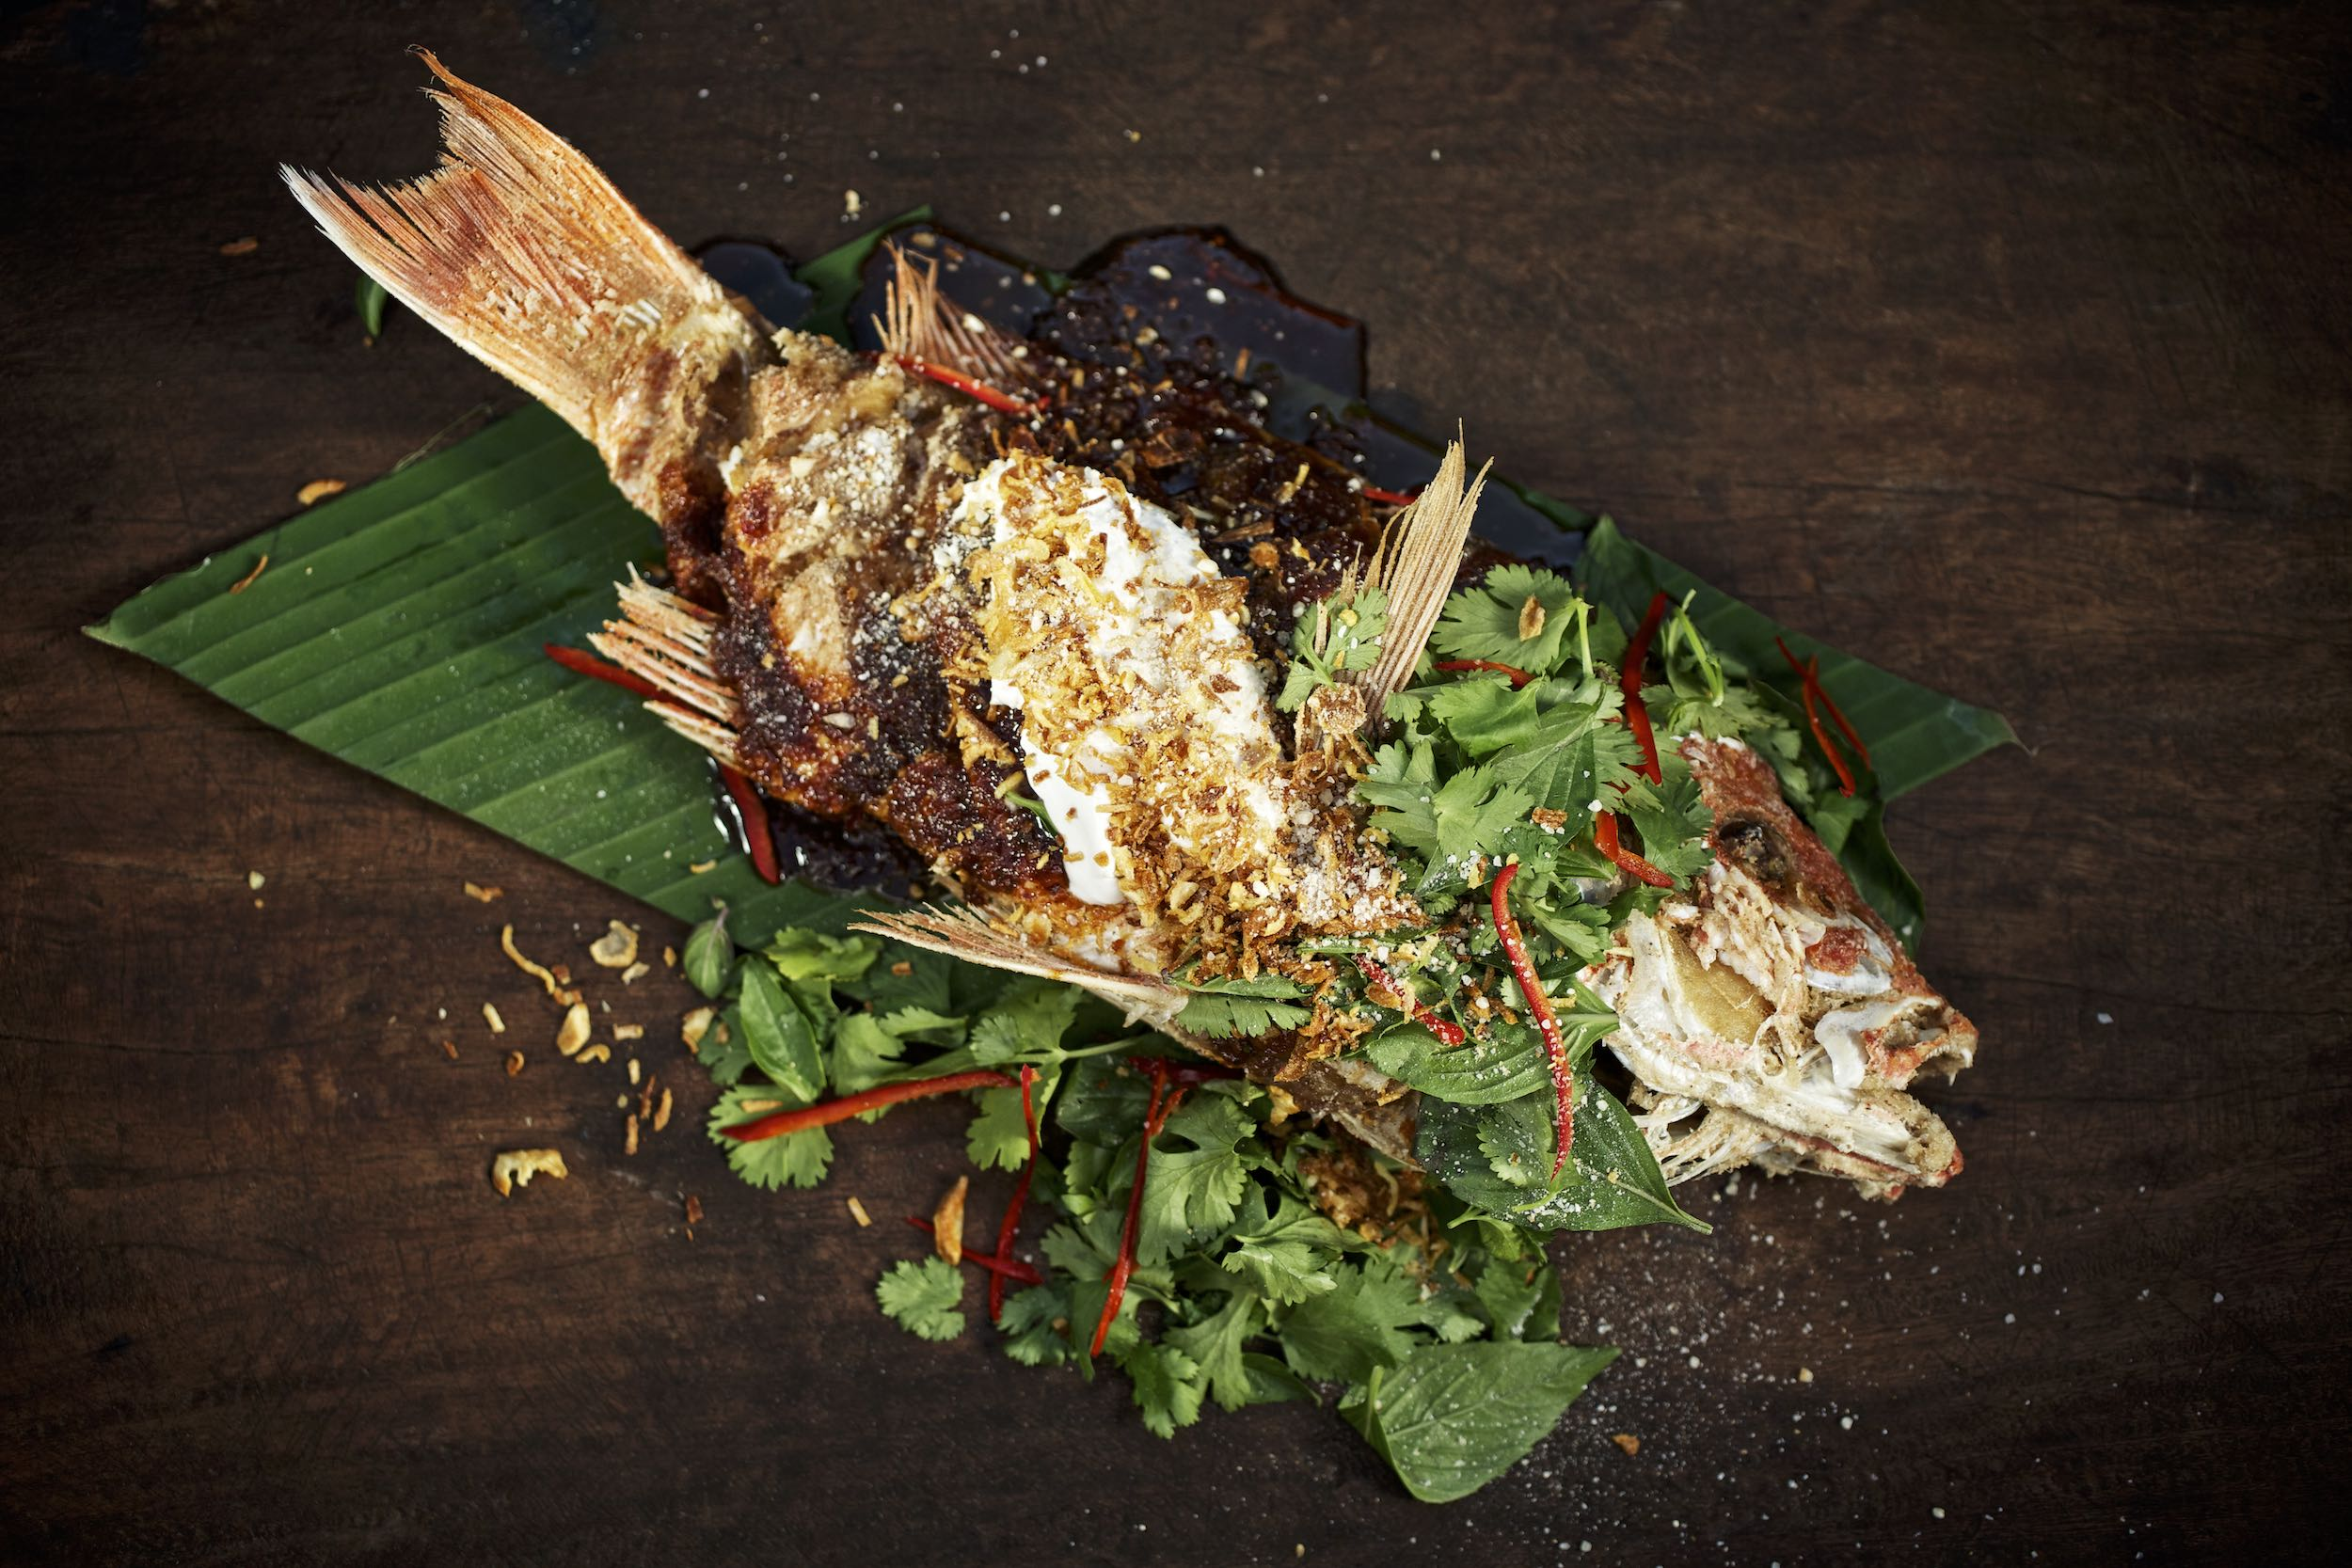 Jody Horton Photography - Whole cooked redfish on banana leaf with herbs and sauces.